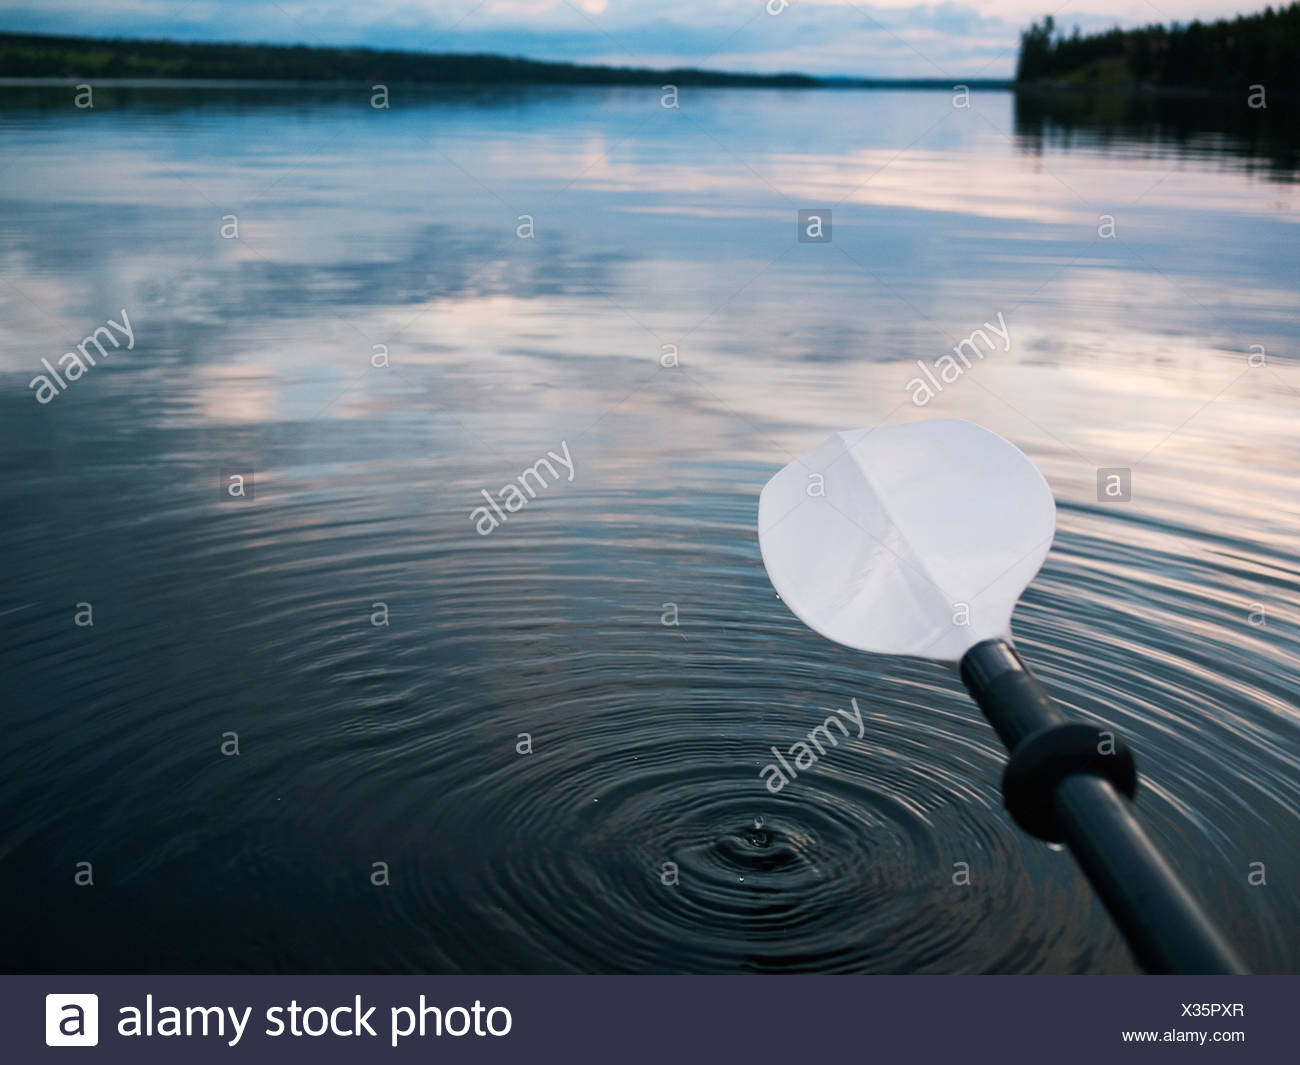 Close up of oar above lake surface at dusk - Stock Image